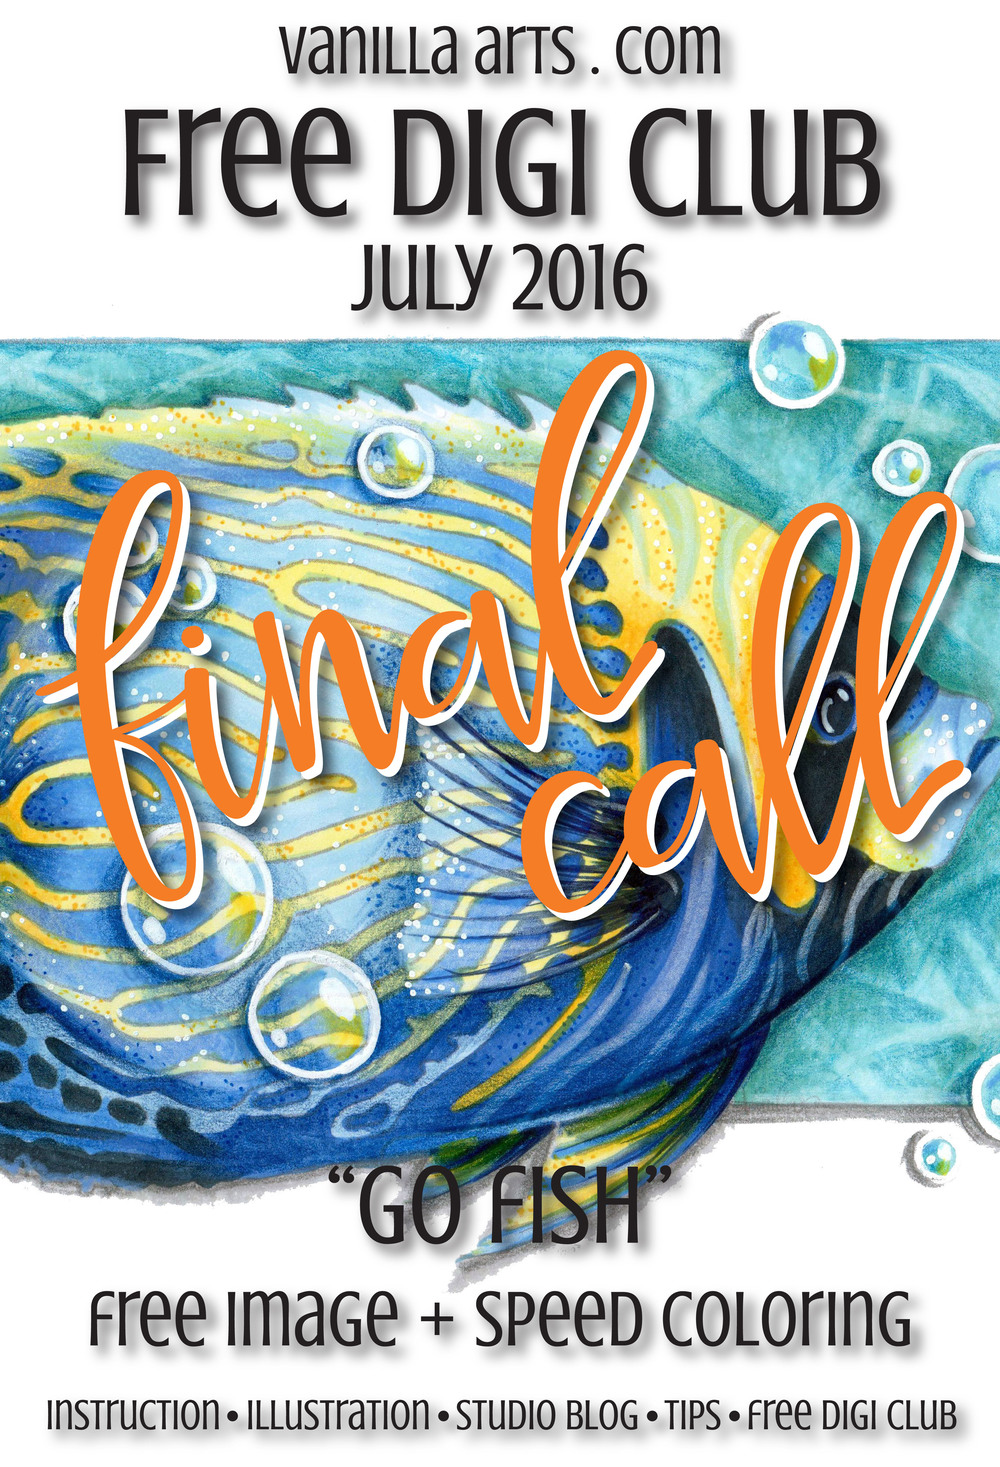 """Final Call for July's Free Digi Club image """"Go Fish"""". Subscribe for your monthly image at VanillaArts.com"""